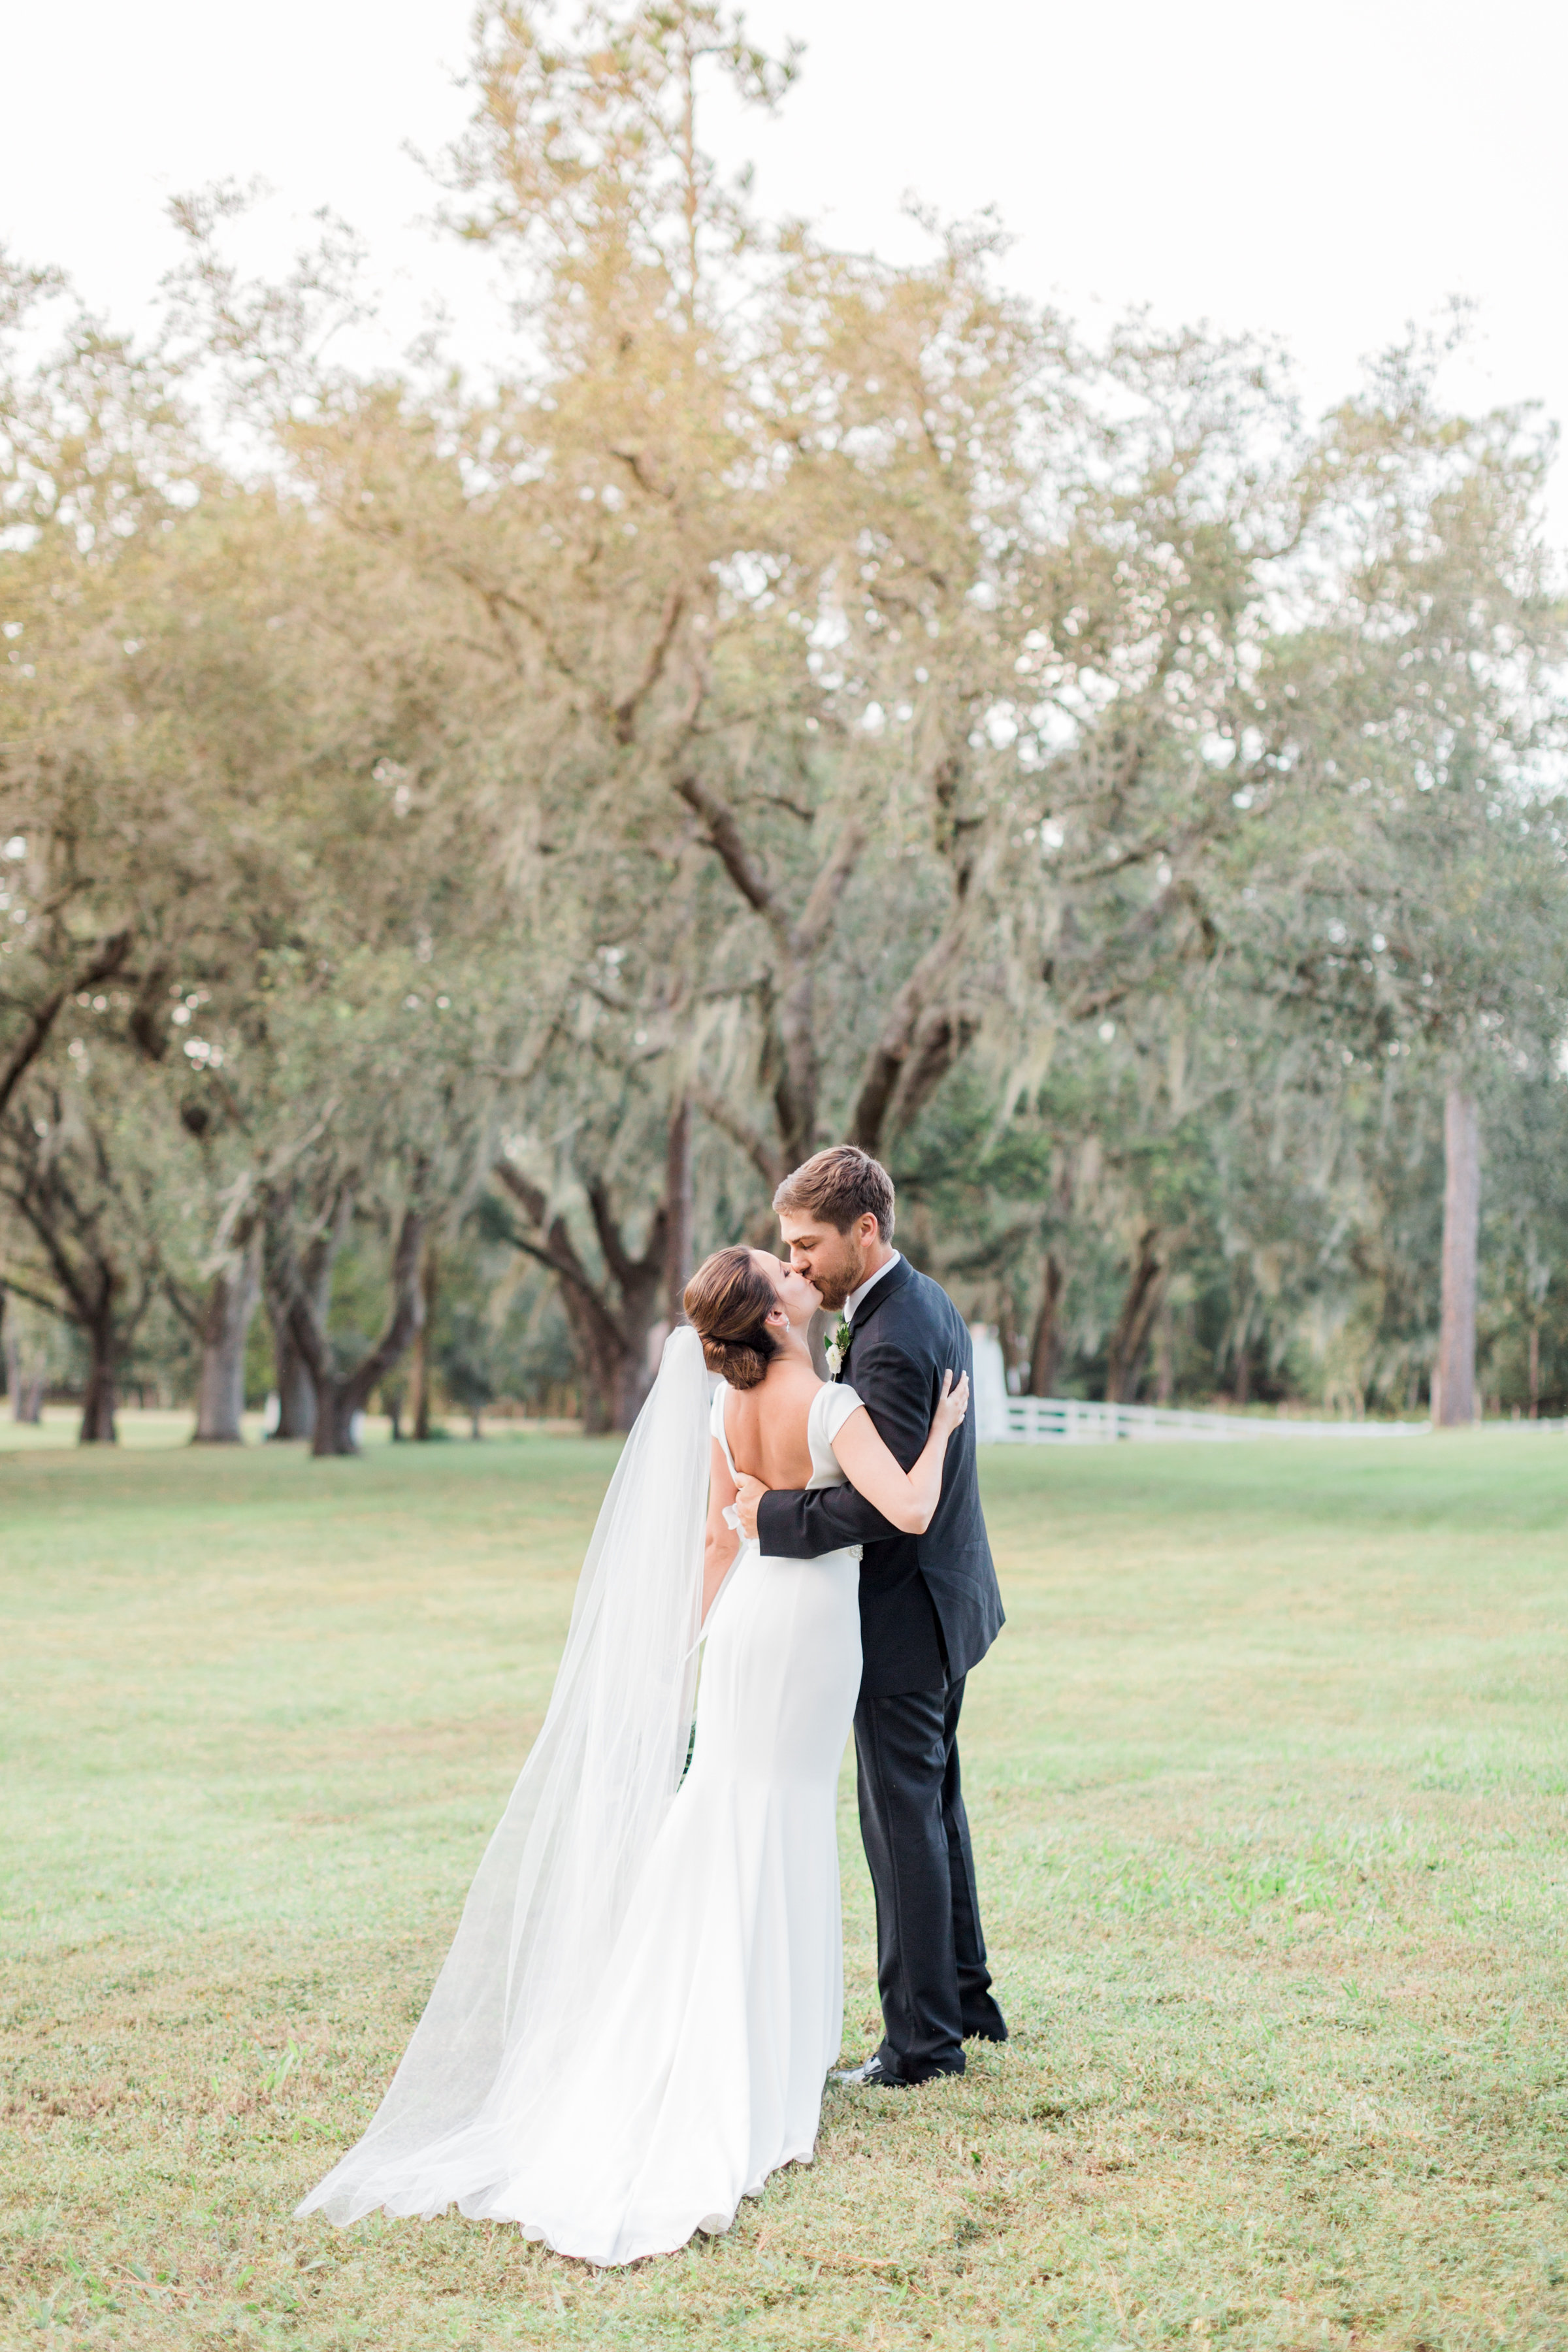 Monzy & Kenny's Wedding | Lauren Galloway Photography-565.jpg